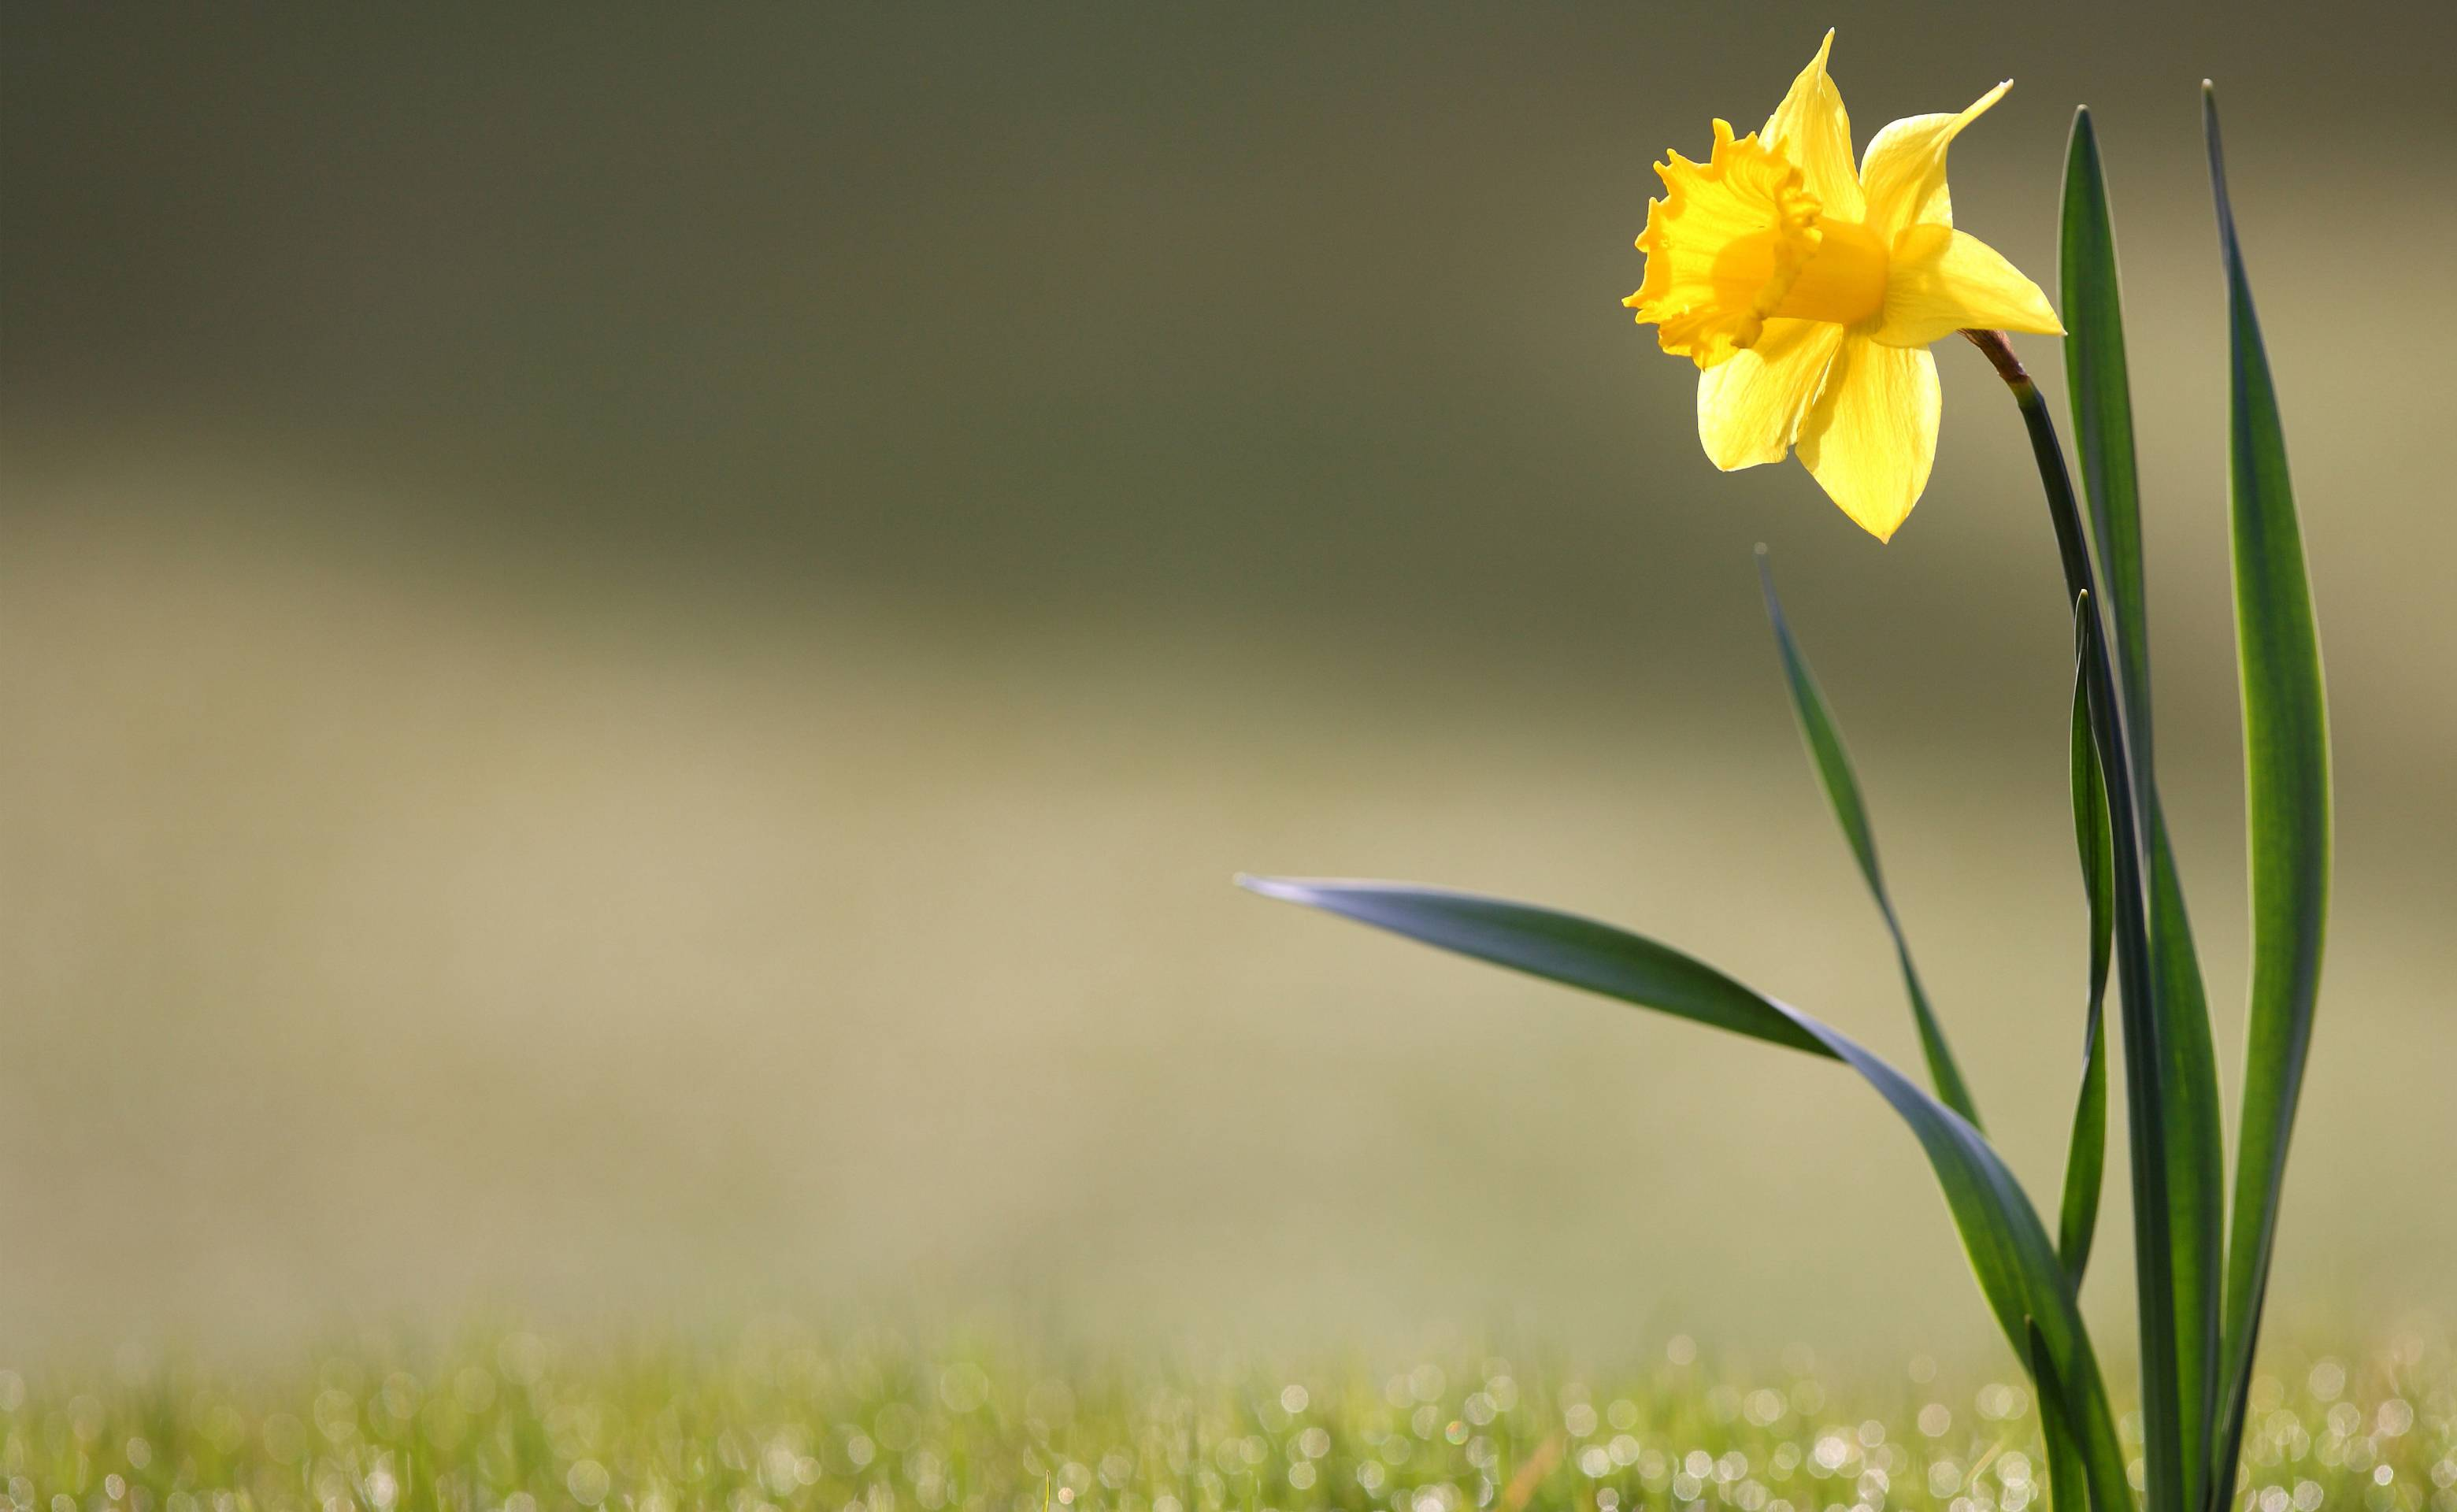 Daffodil Wallpapers Top Free Daffodil Backgrounds Wallpaperaccess